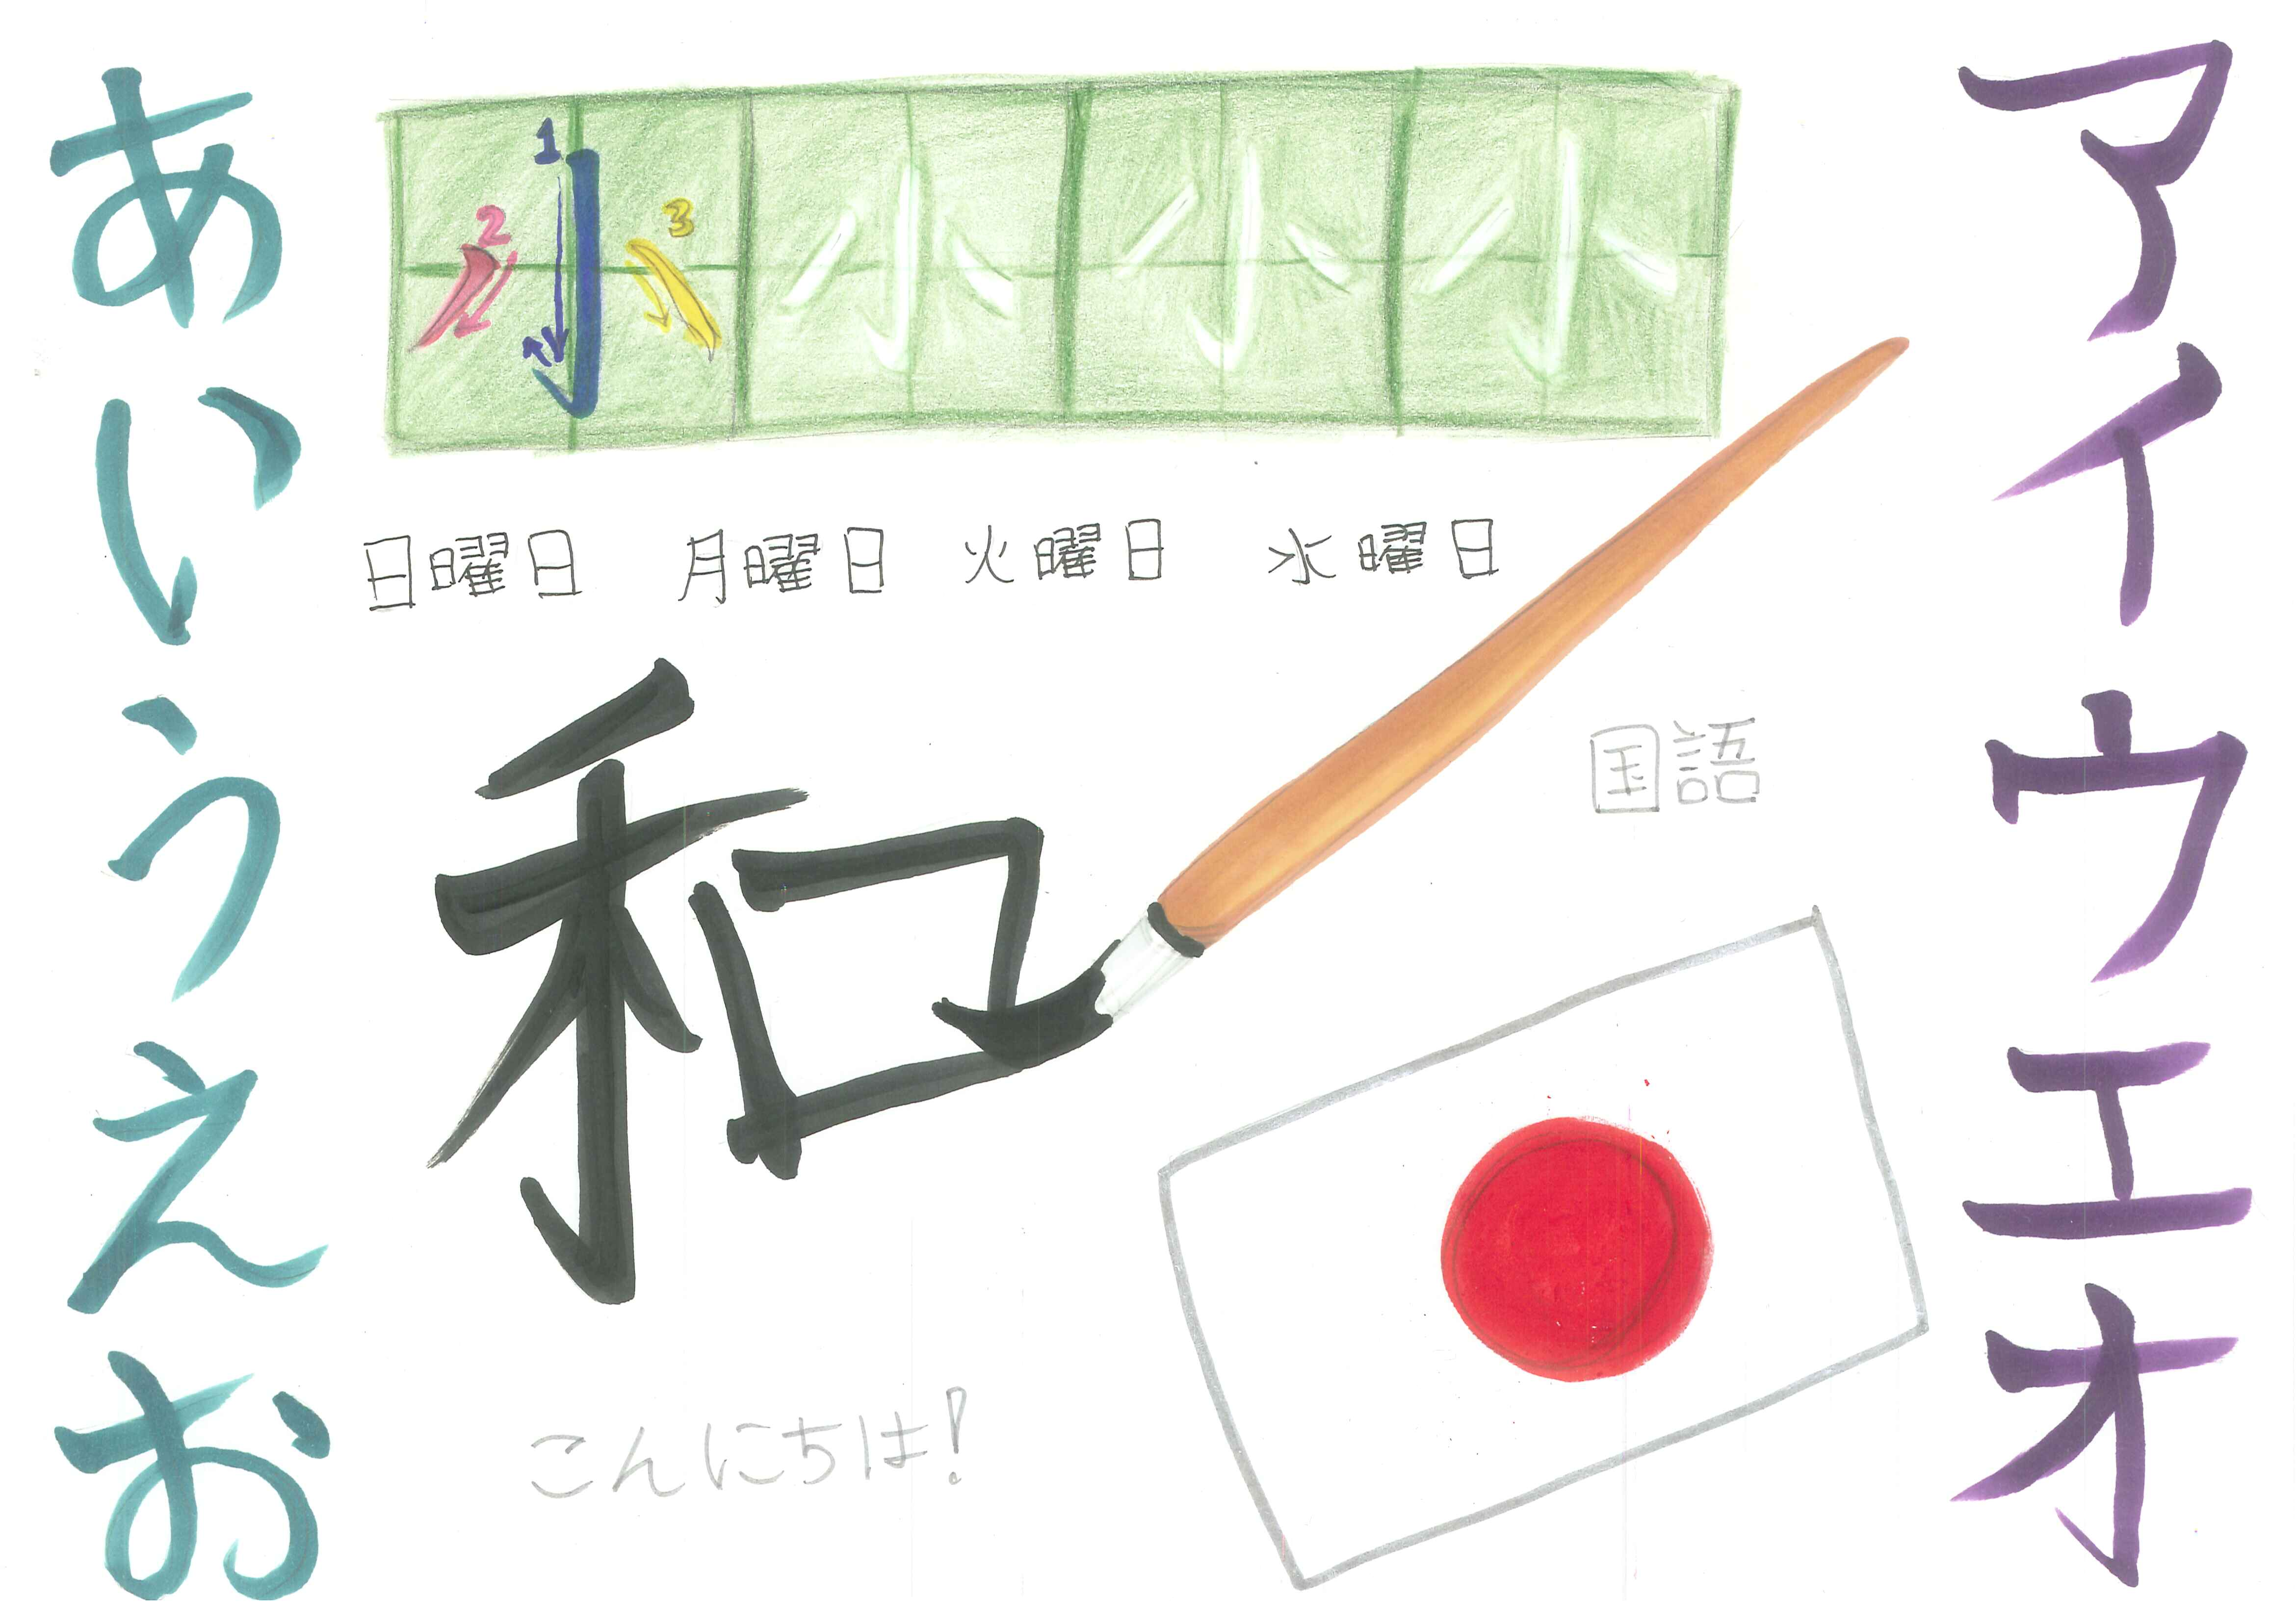 Japanese words clipart banner royalty free Teach clipart japanese language - 103 transparent clip arts, images ... banner royalty free